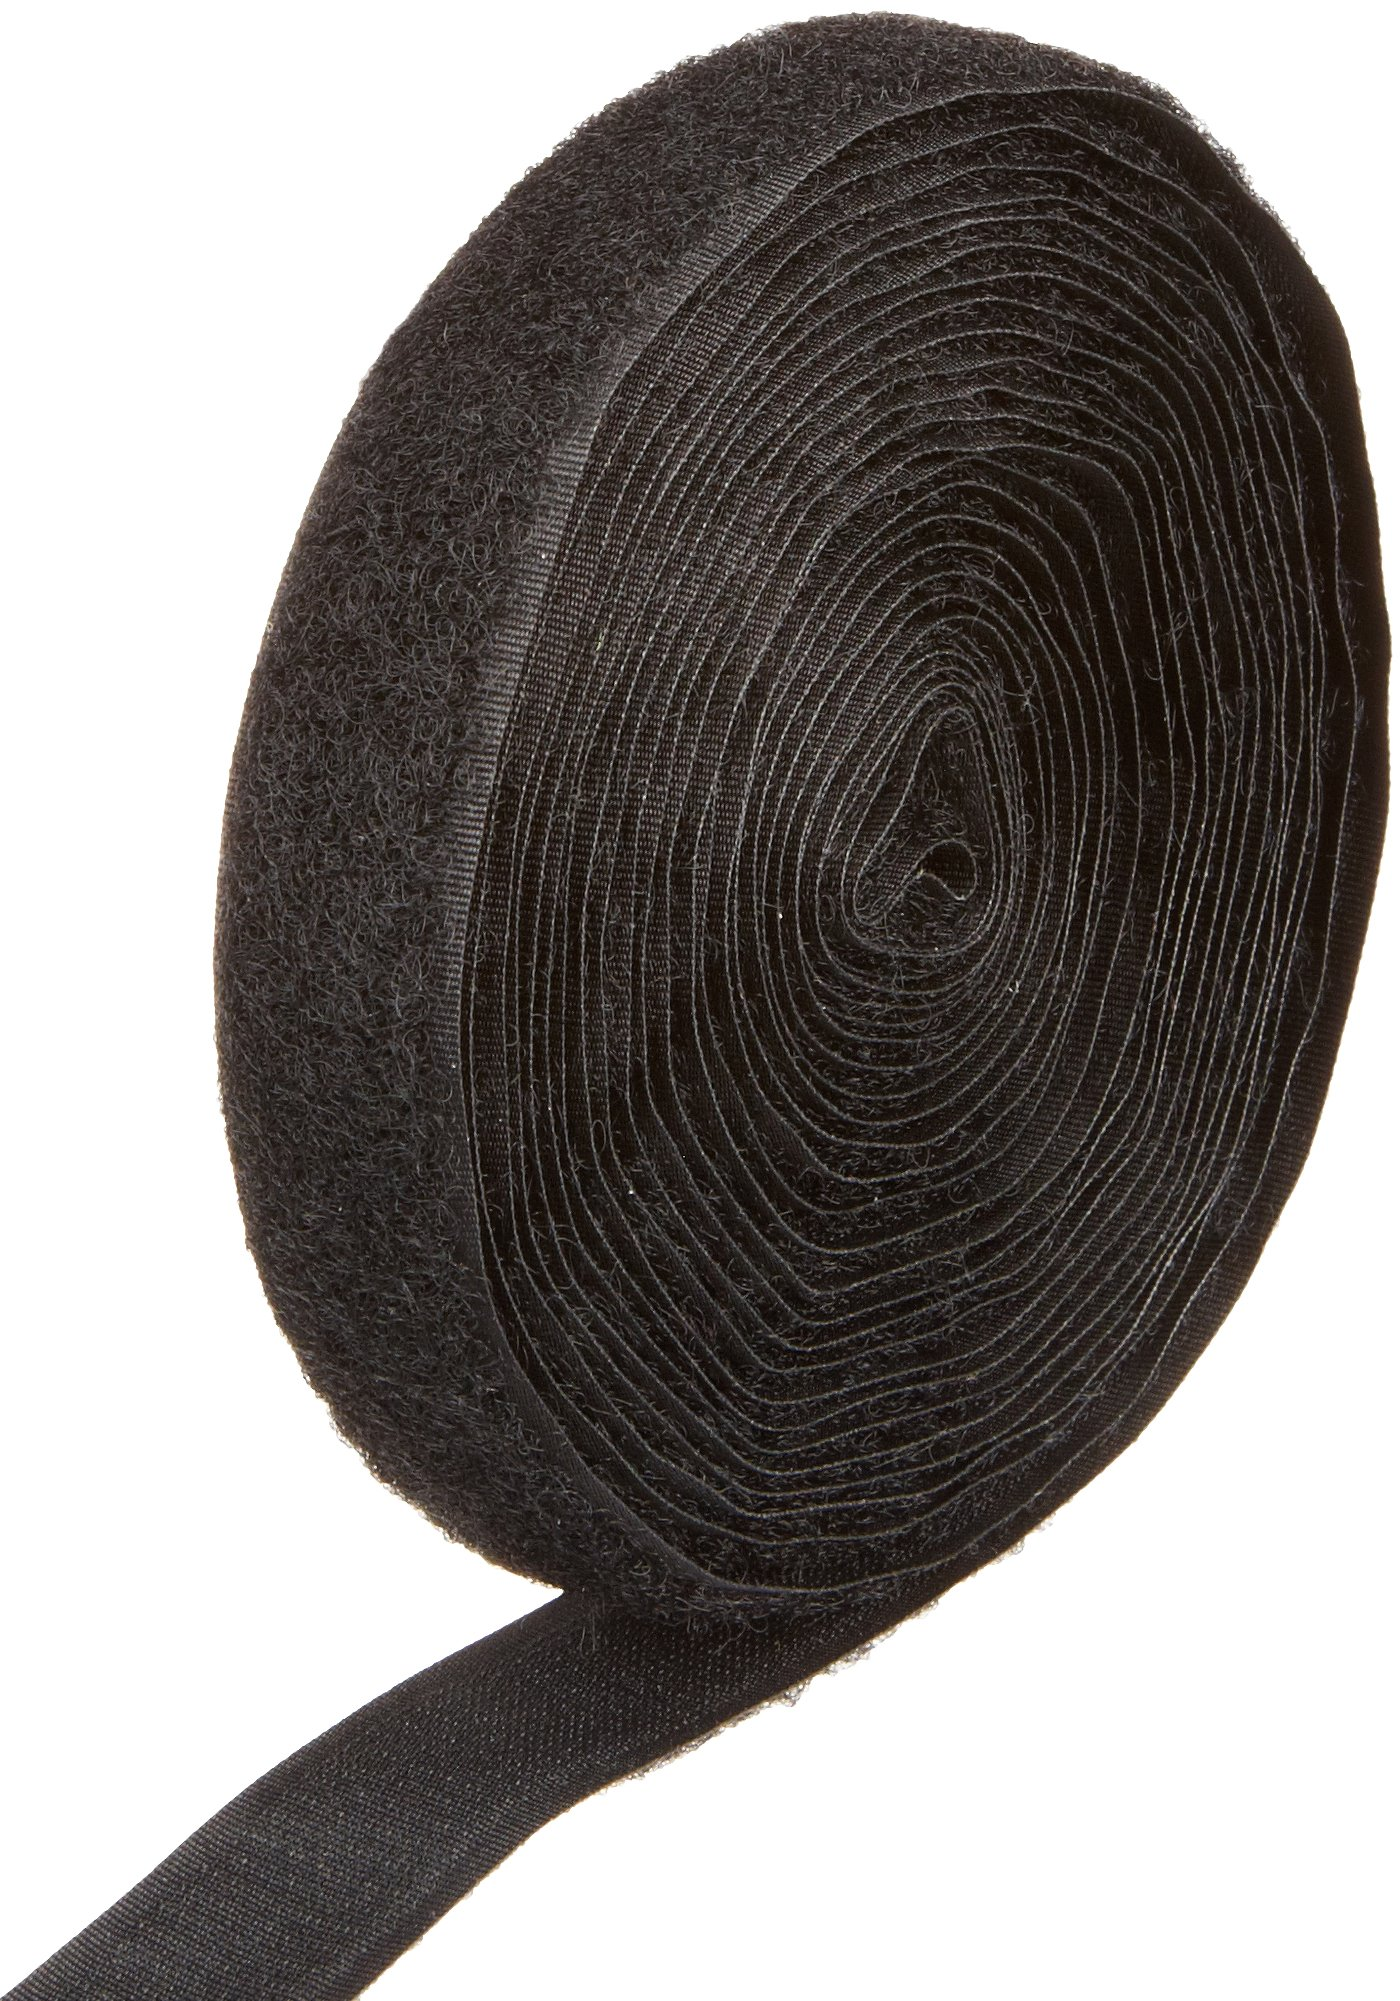 VELCRO 1003-AP-PB/L Black Nylon Woven Fastening Tape, Sew-On Loop Only, 3/4'' Wide, Standard Back, 5 Yards